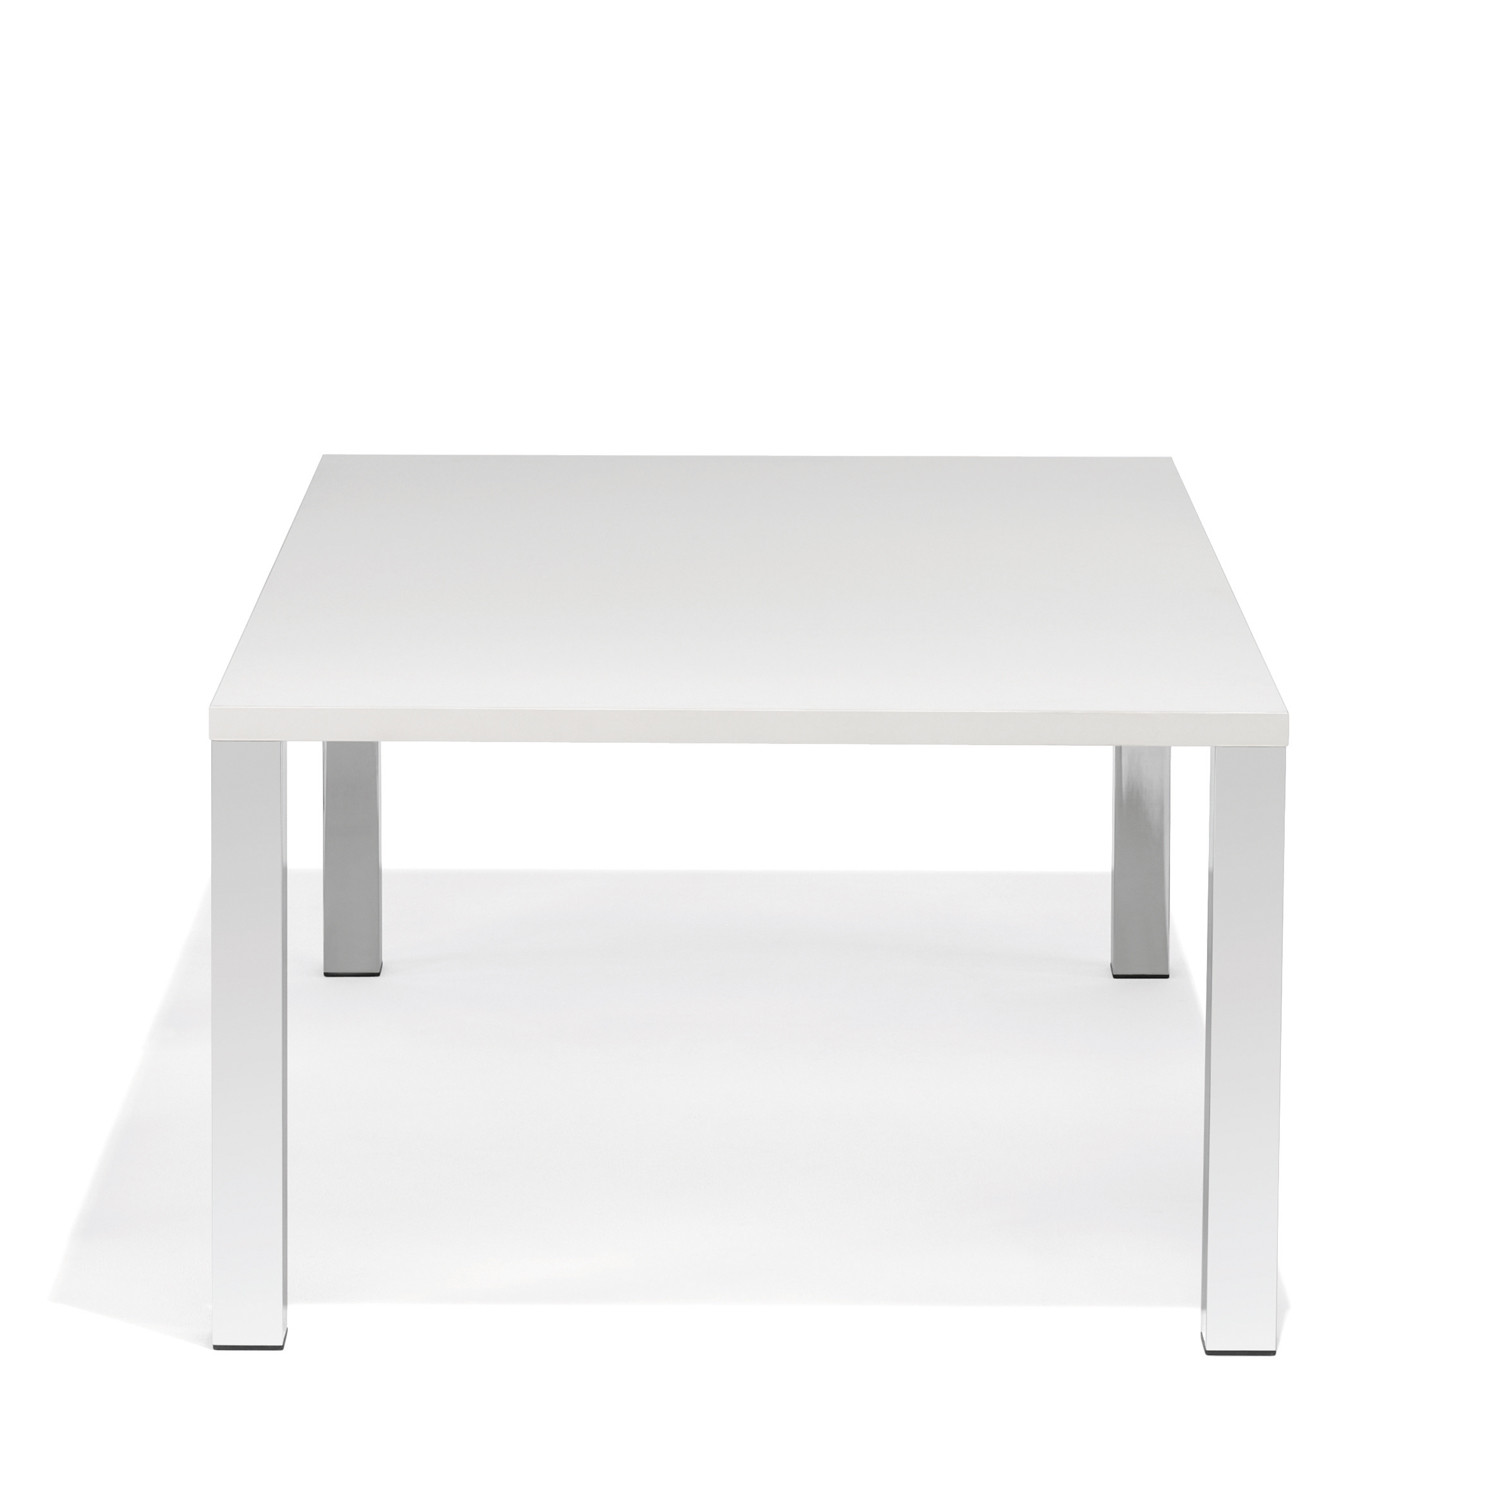 8950 Table Series with white top